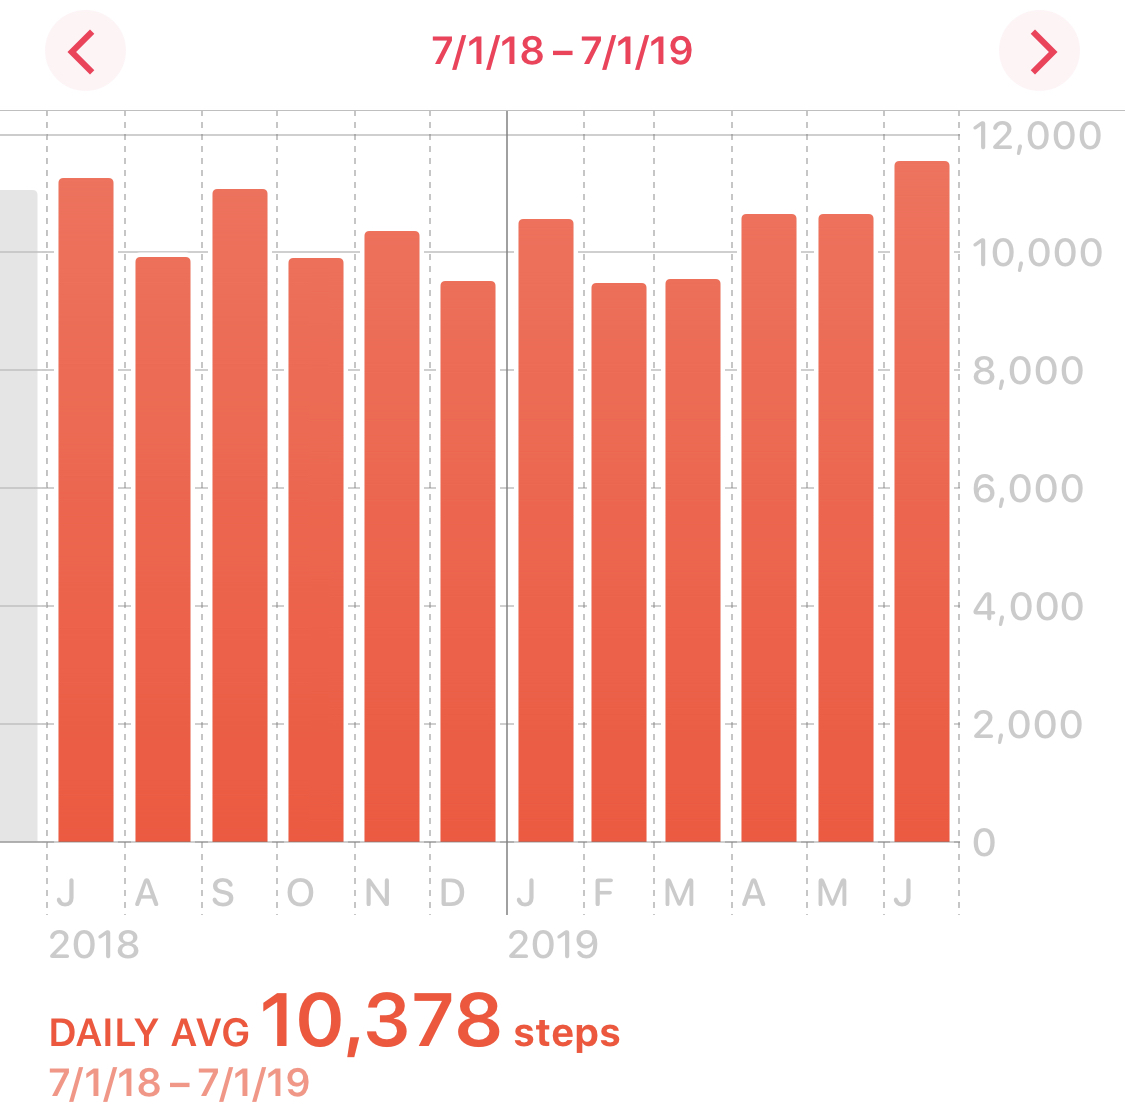 Graph showing my exercise based on steps taken during the last year